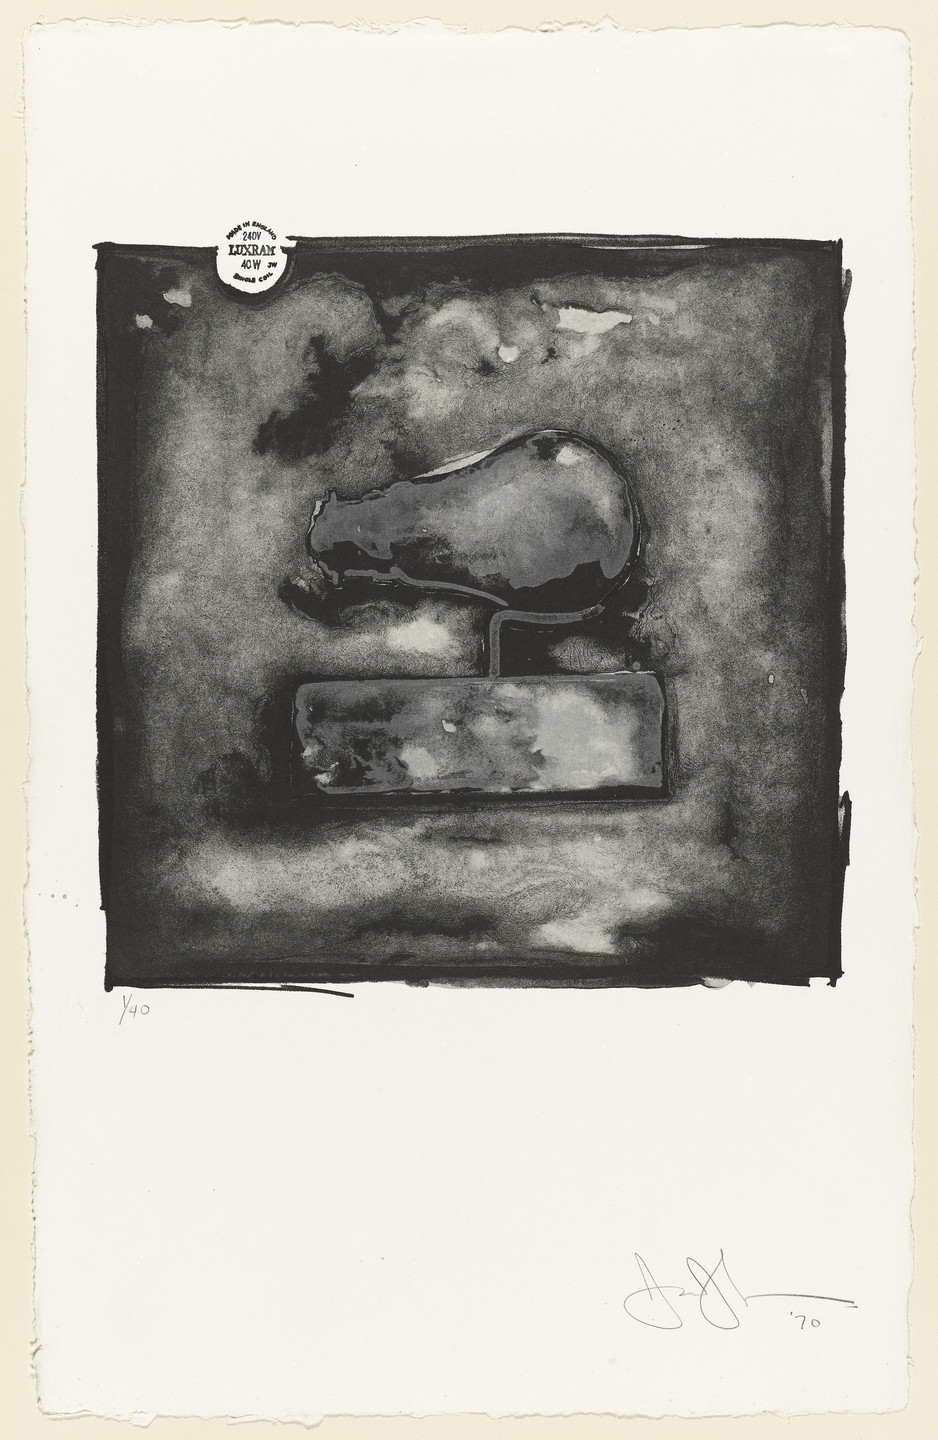 Jasper Johns. Light Bulb. 1970